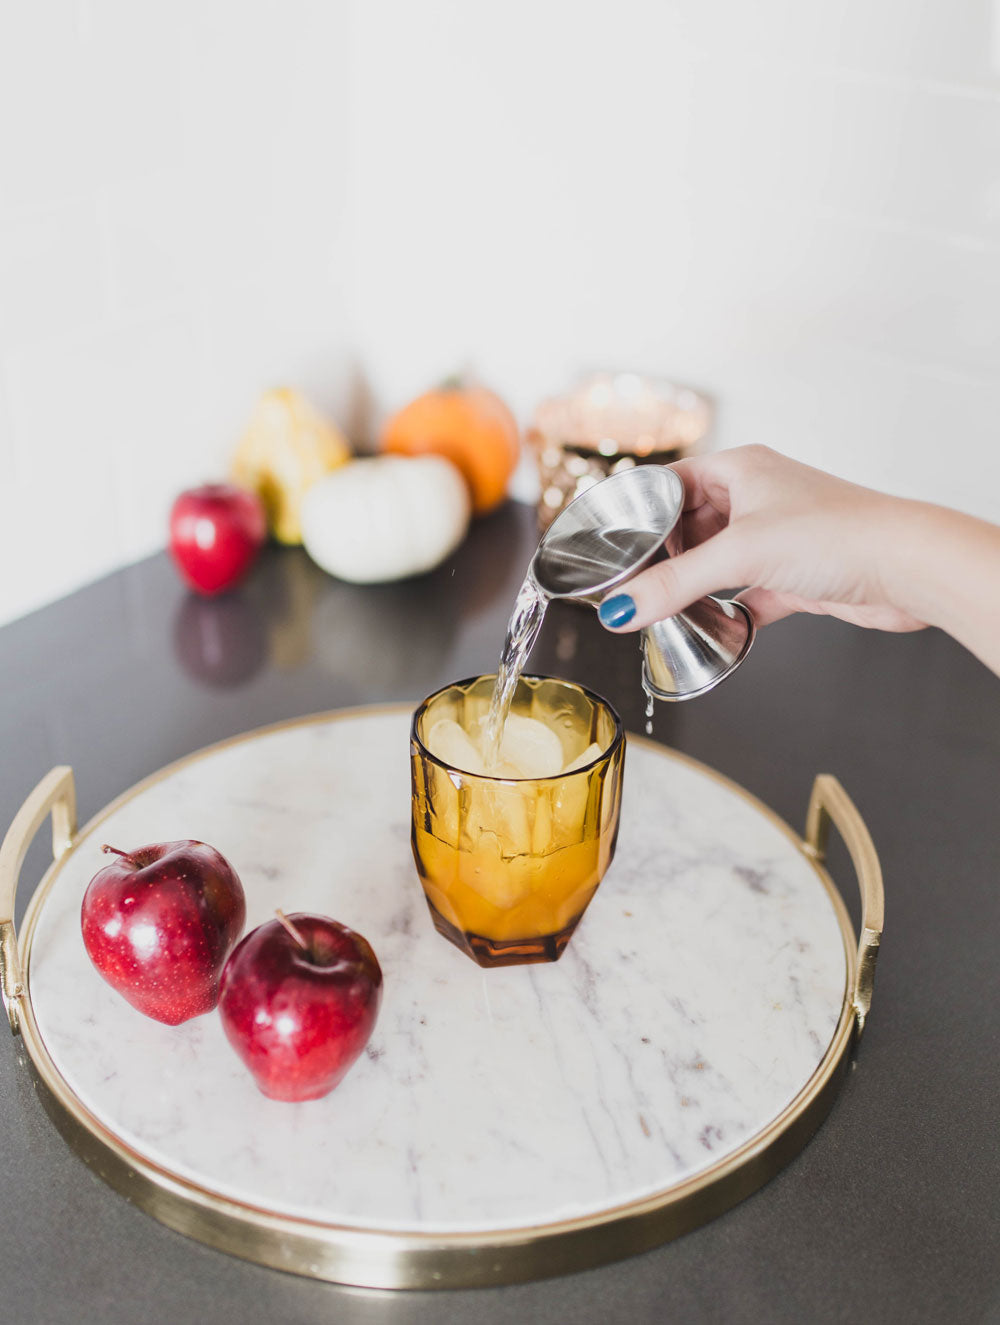 Dani Barbe Harvest Cocktail Recipe with Apple Cider